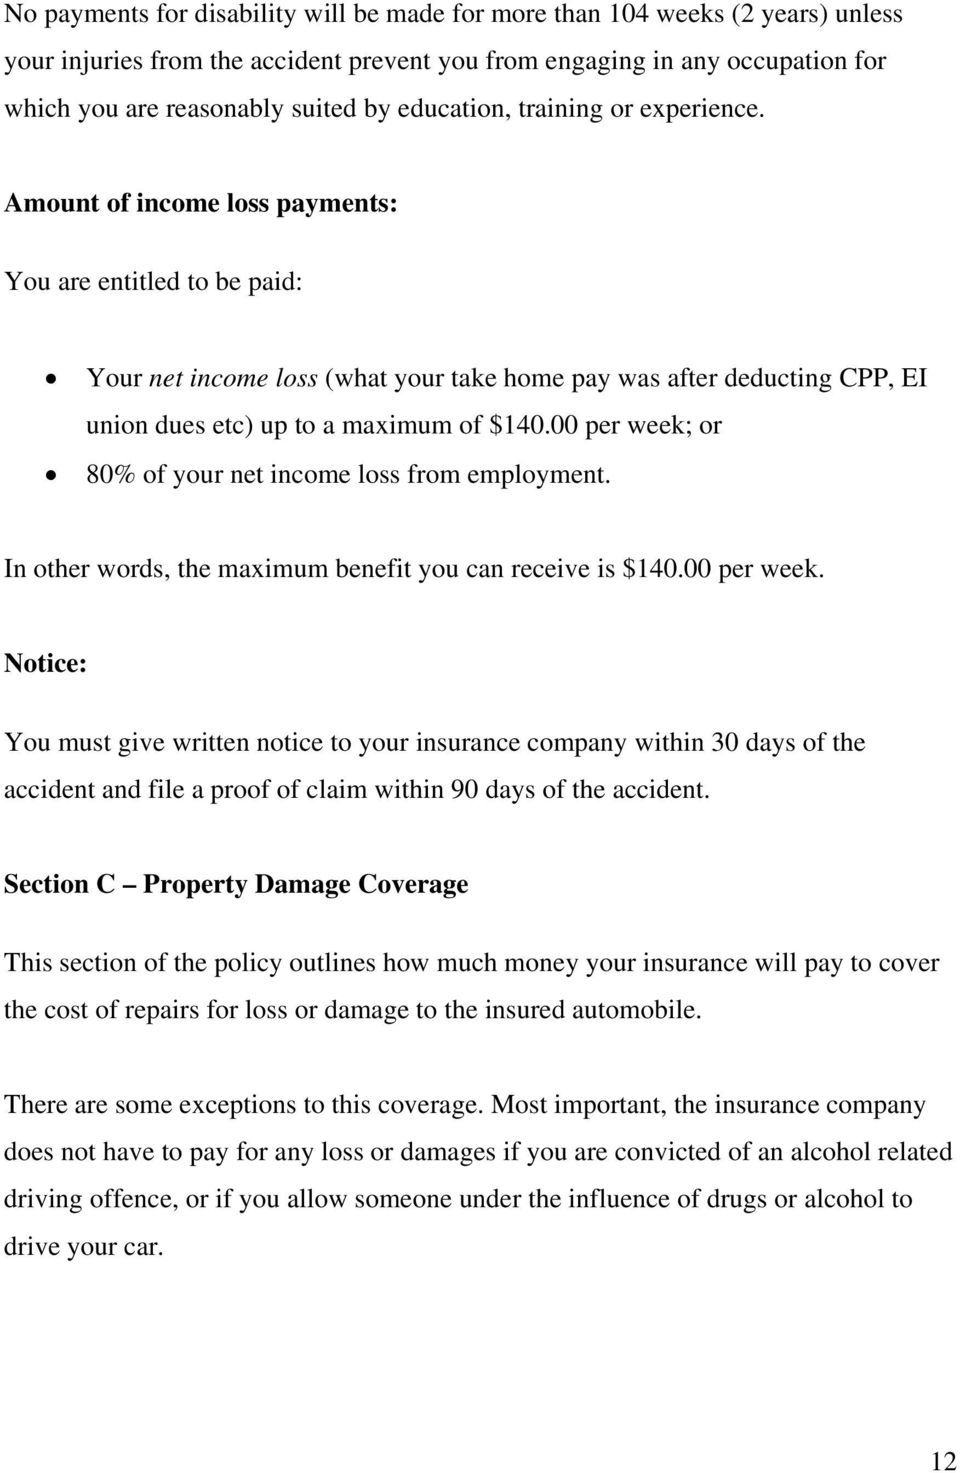 Amount of income loss payments: You are entitled to be paid: Your net income loss (what your take home pay was after deducting CPP, EI union dues etc) up to a maximum of $140.